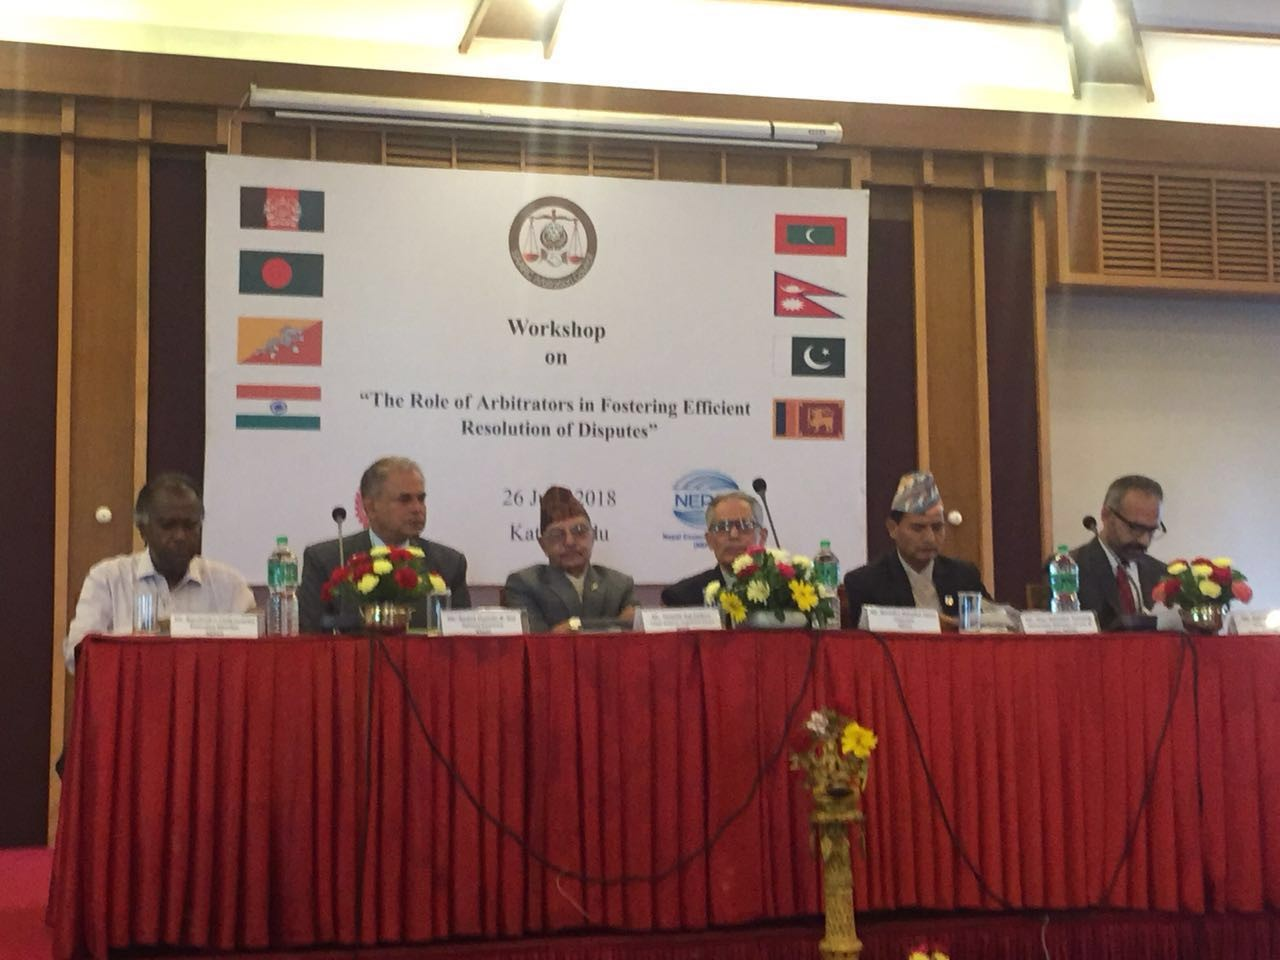 Press Release - Workshop on the Role of Arbitrators in Fostering Efficient Resolution of Disputes, organized jointly in Kathmandu today by SARCO